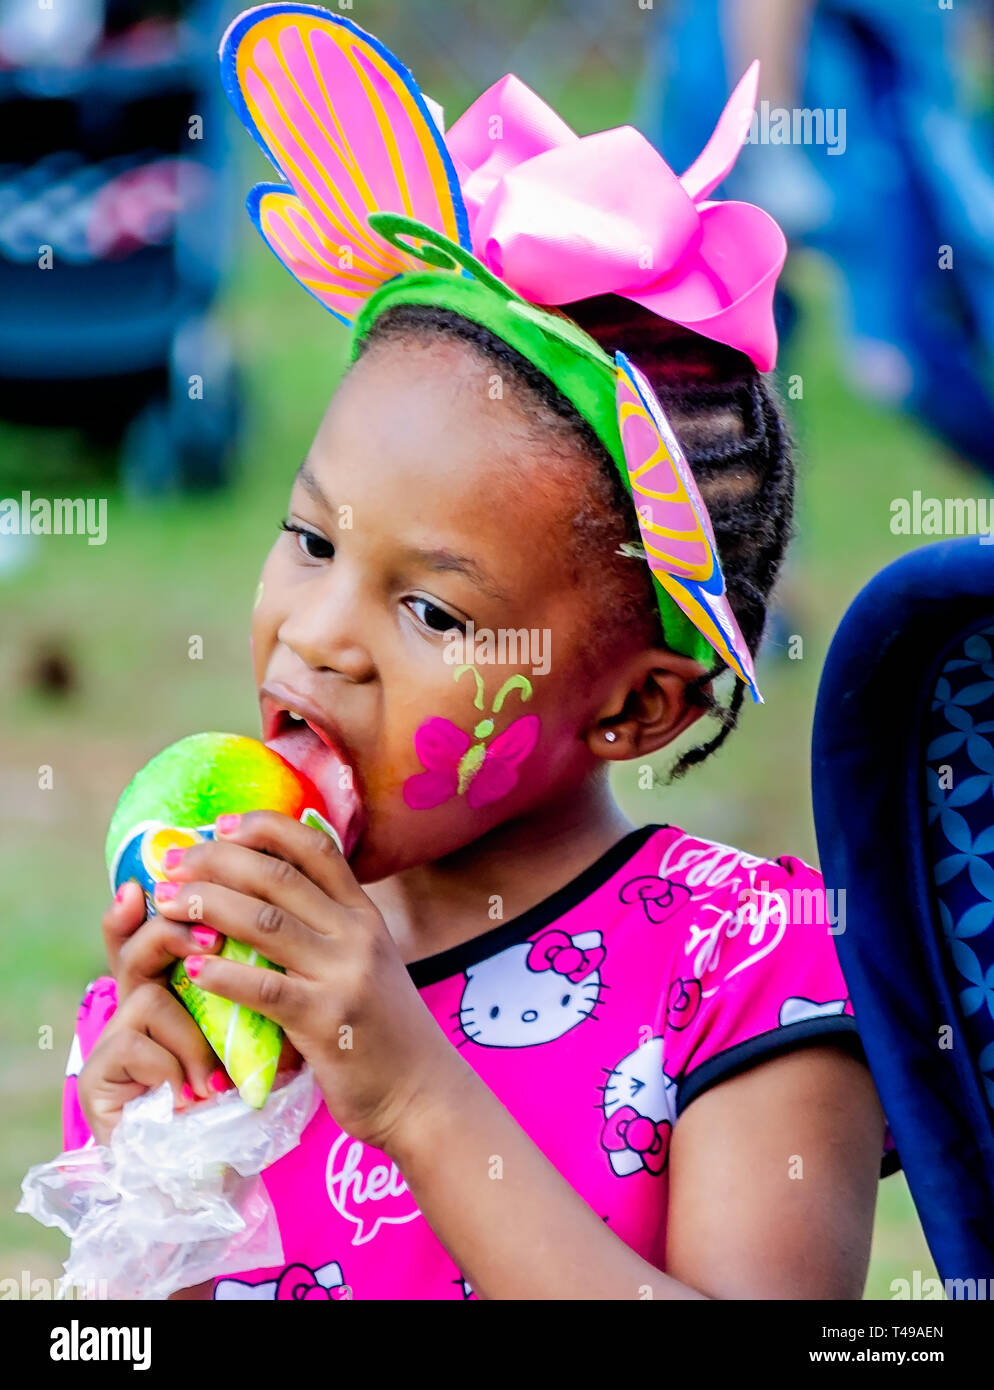 A girl in bunny ears eats a rainbow-colored sno-cone during a community Easter egg hunt at Langan Park, April 13, 2019, in Mobile, Alabama. - Stock Image